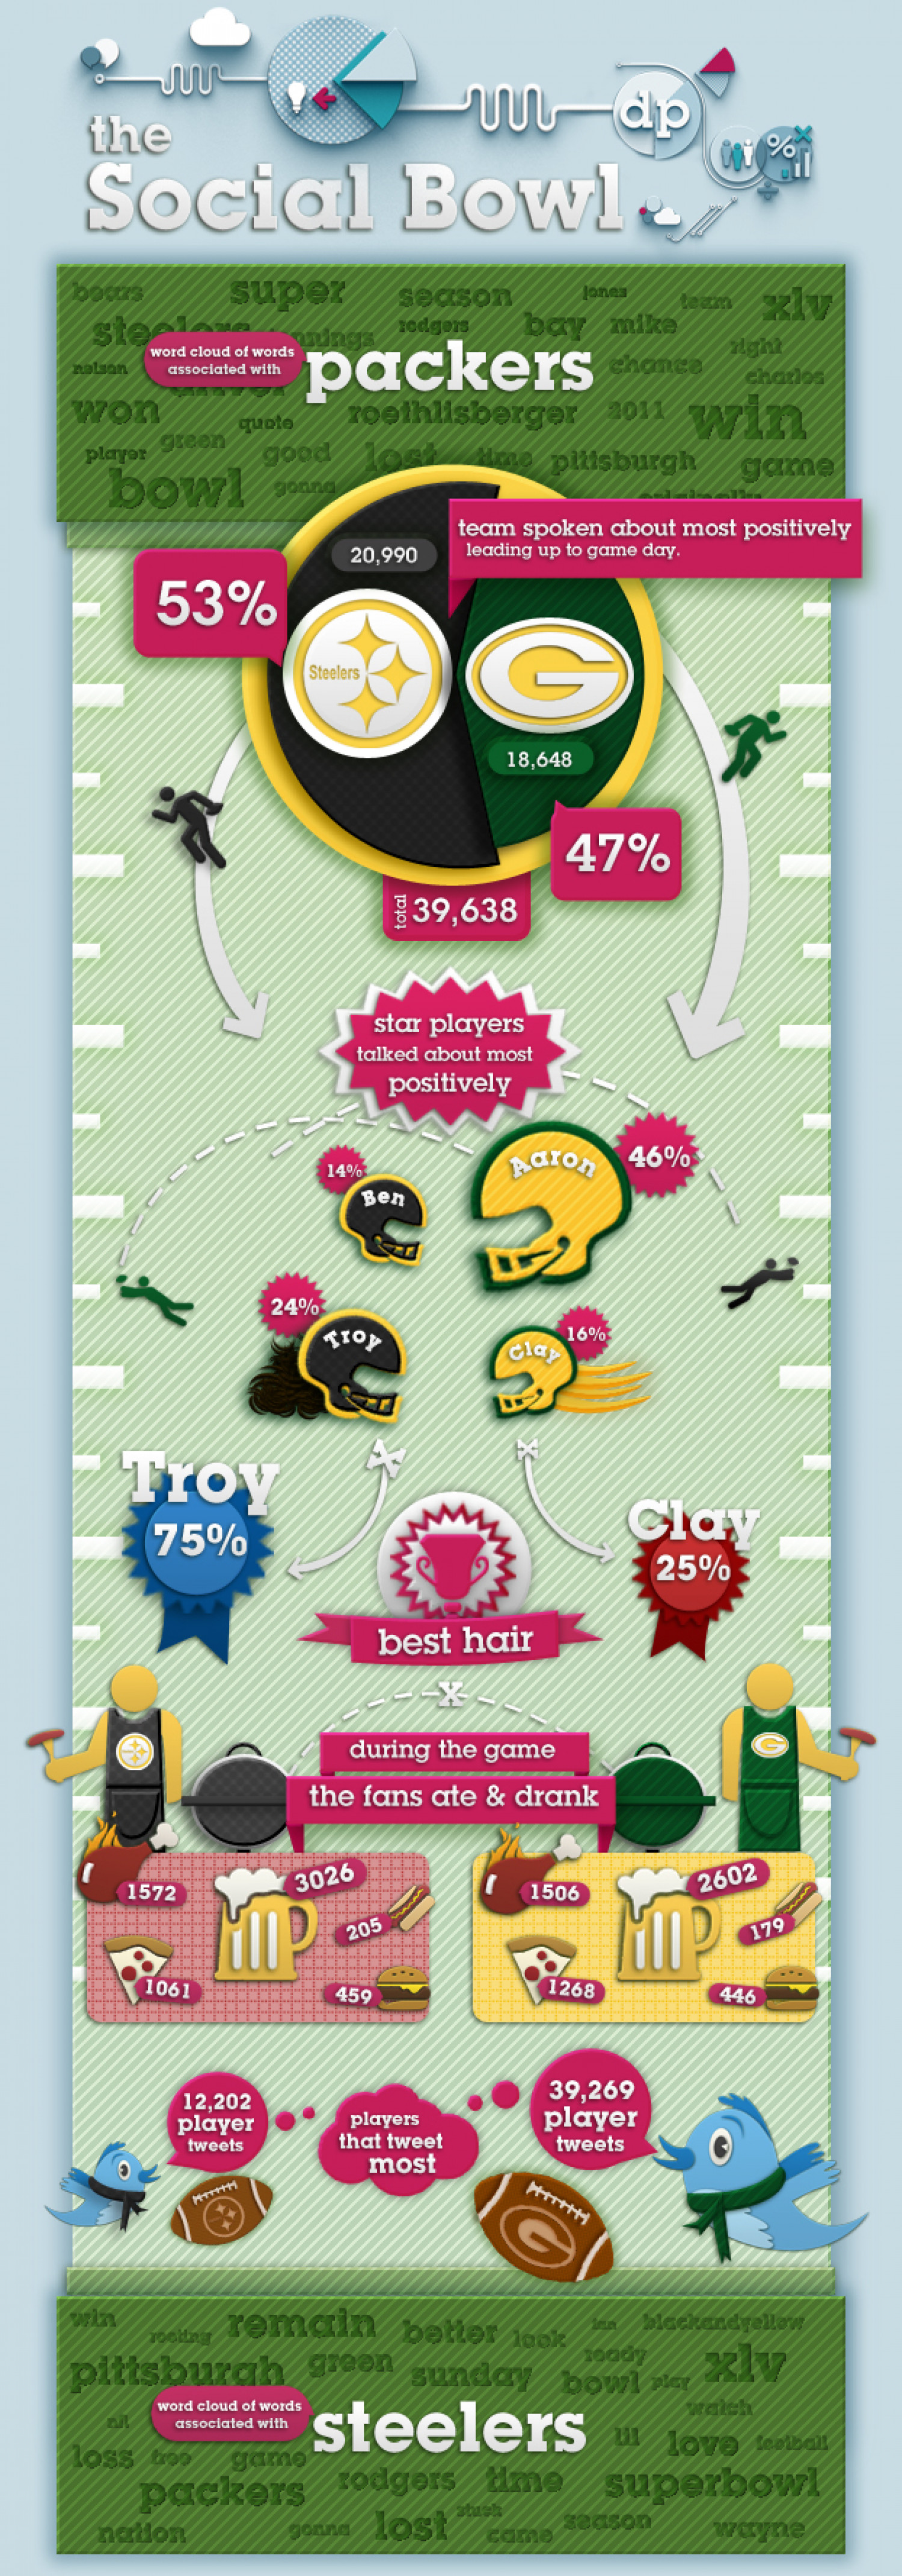 Super Bowl Infographic: The Social Bowl Infographic